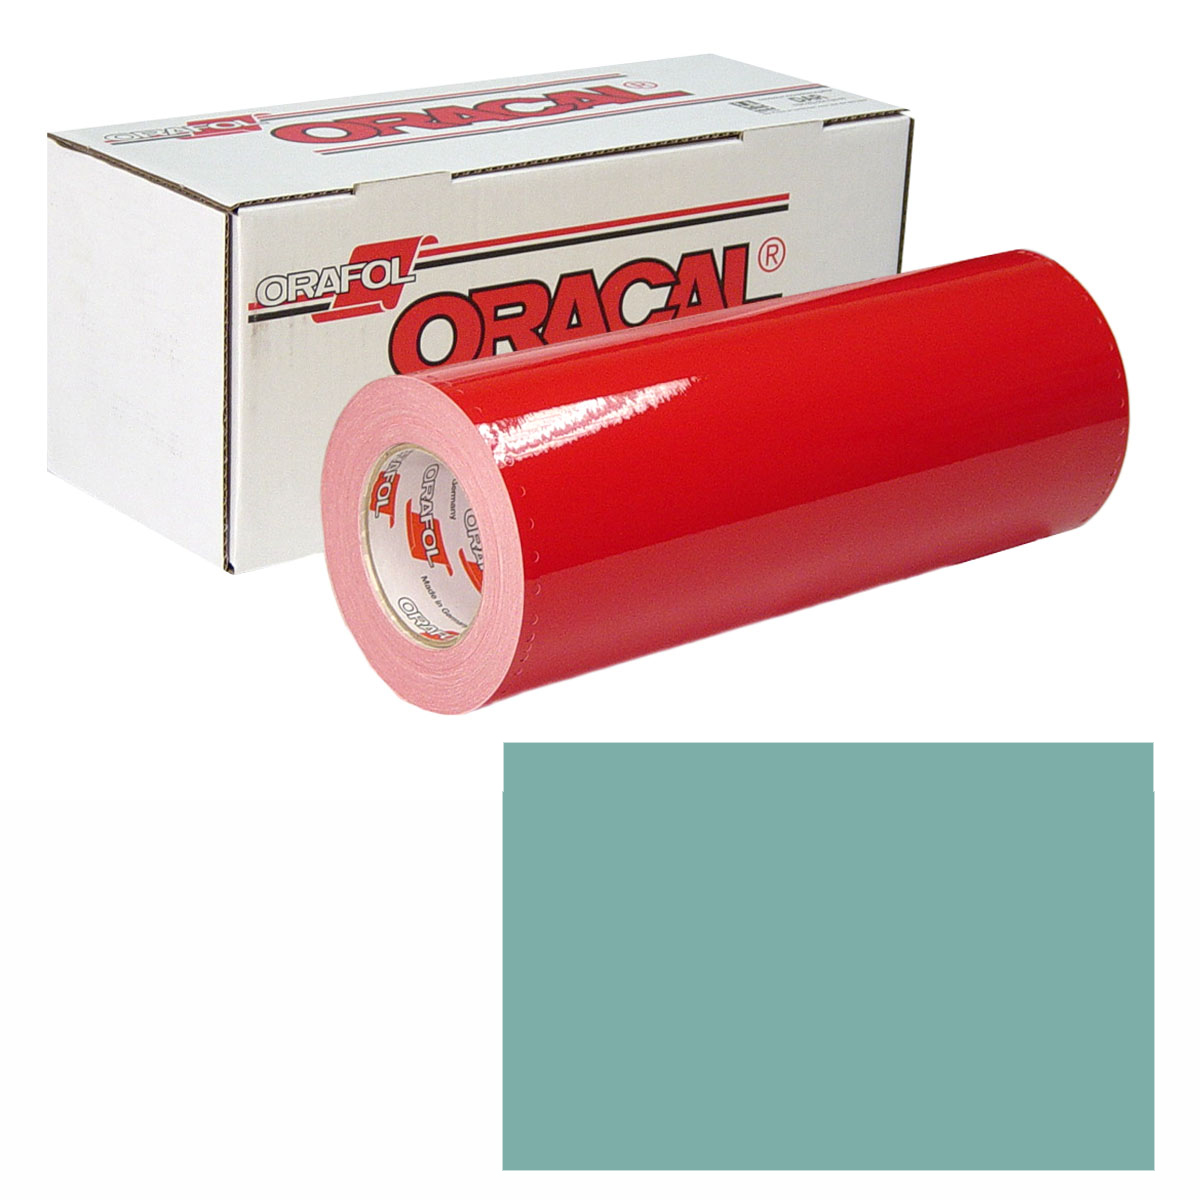 ORACAL 951M Unp 48In X 10Yd 674 Mint Metallic